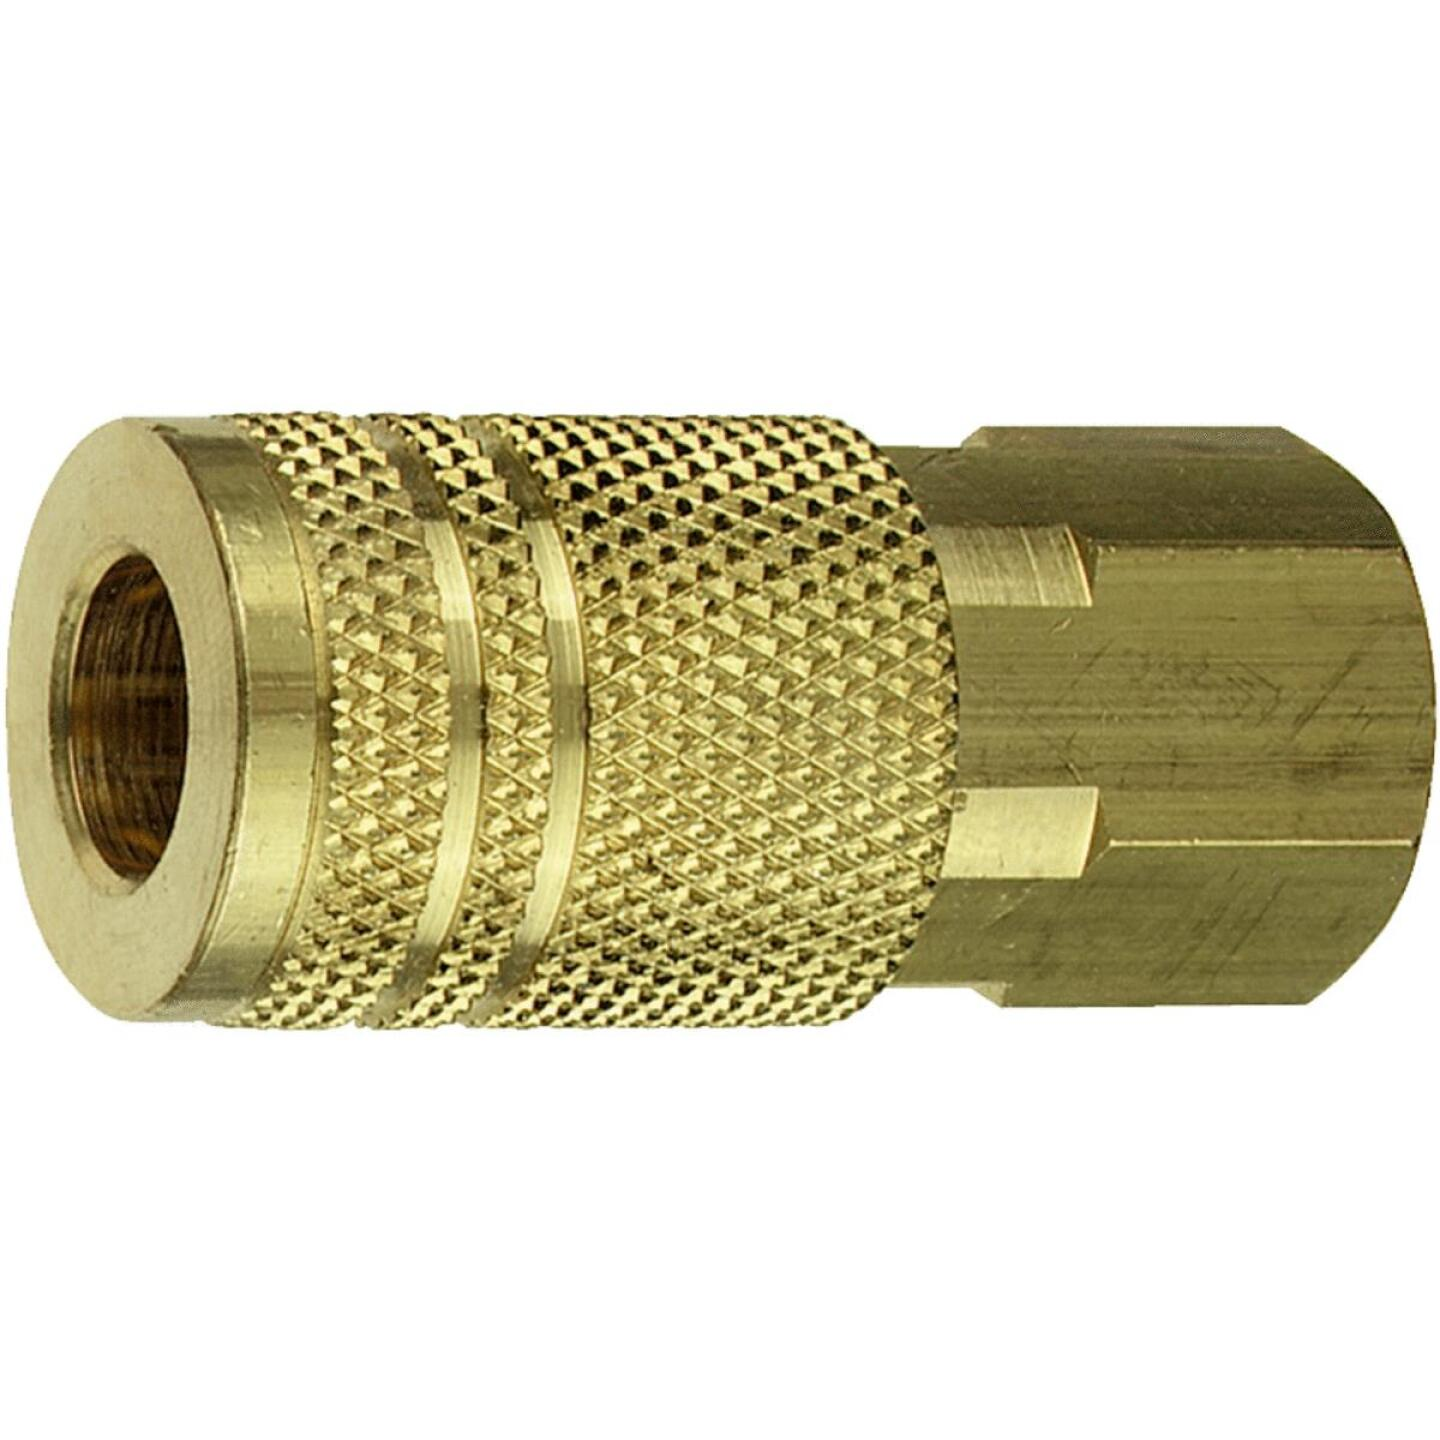 Tru-Flate Industrial/Milton Series Push-to-Connect 3/8 In. FNPT Coupler Image 2